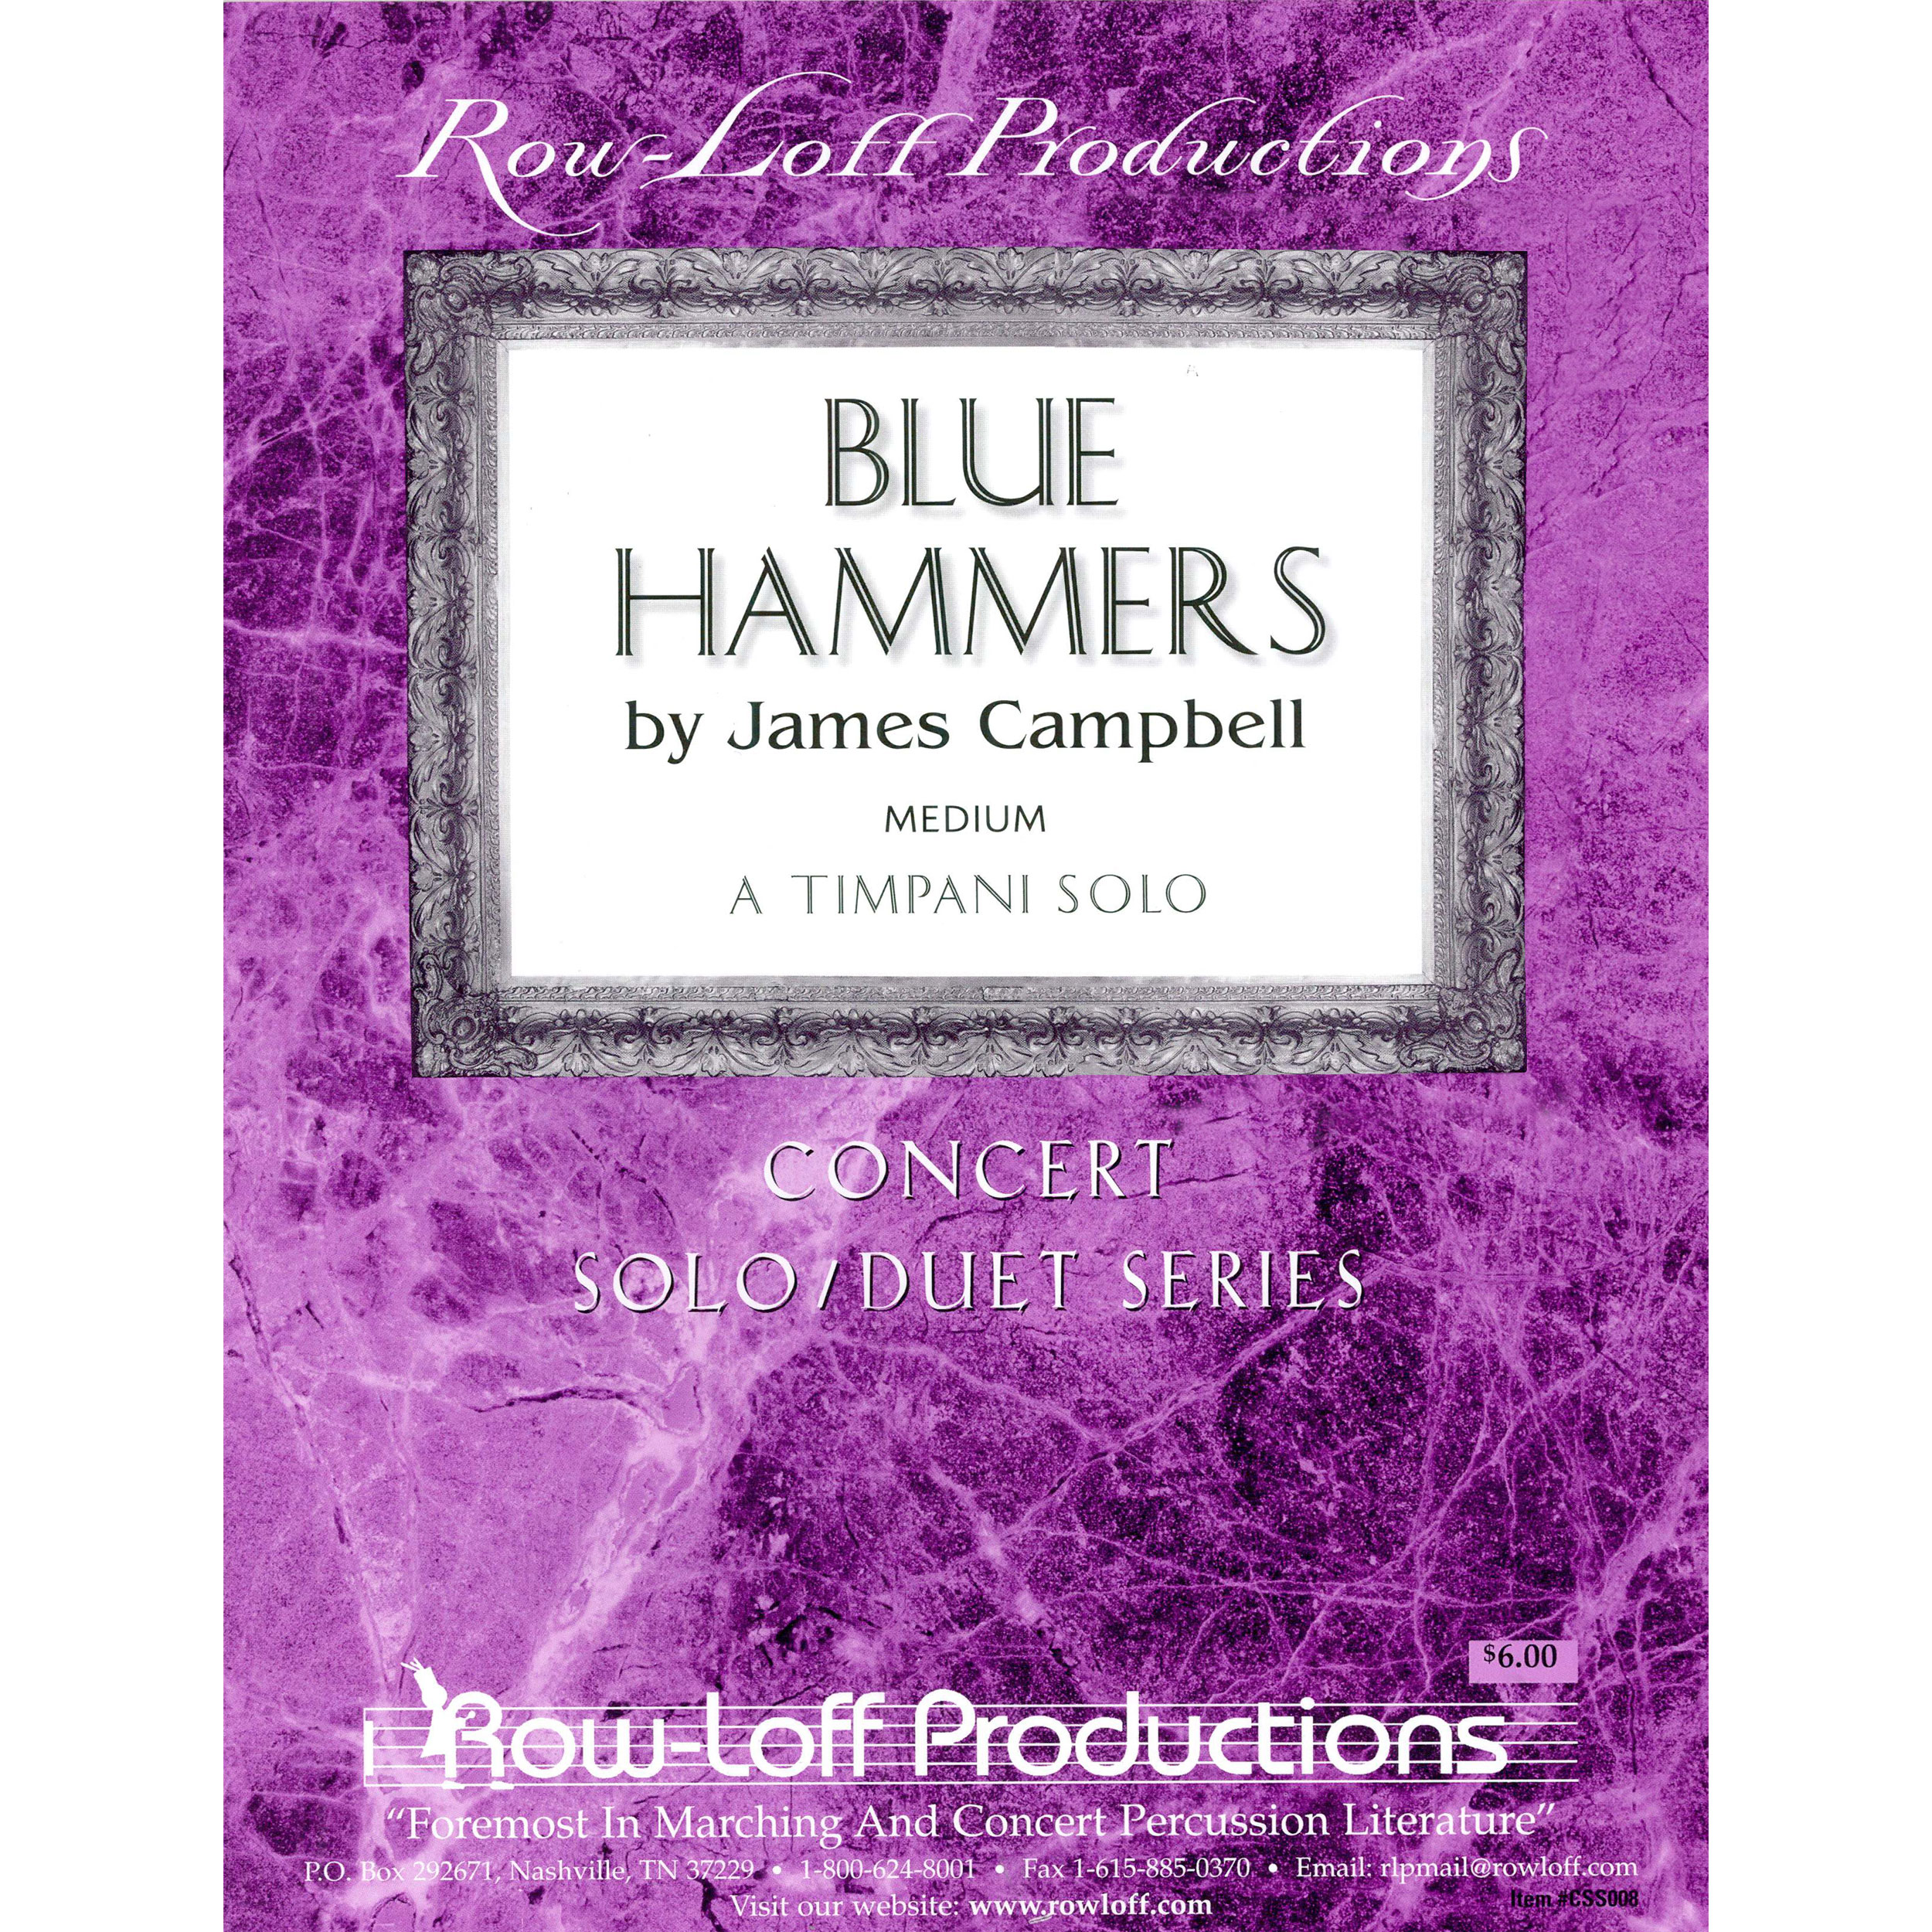 Blue Hammers by James Campbell